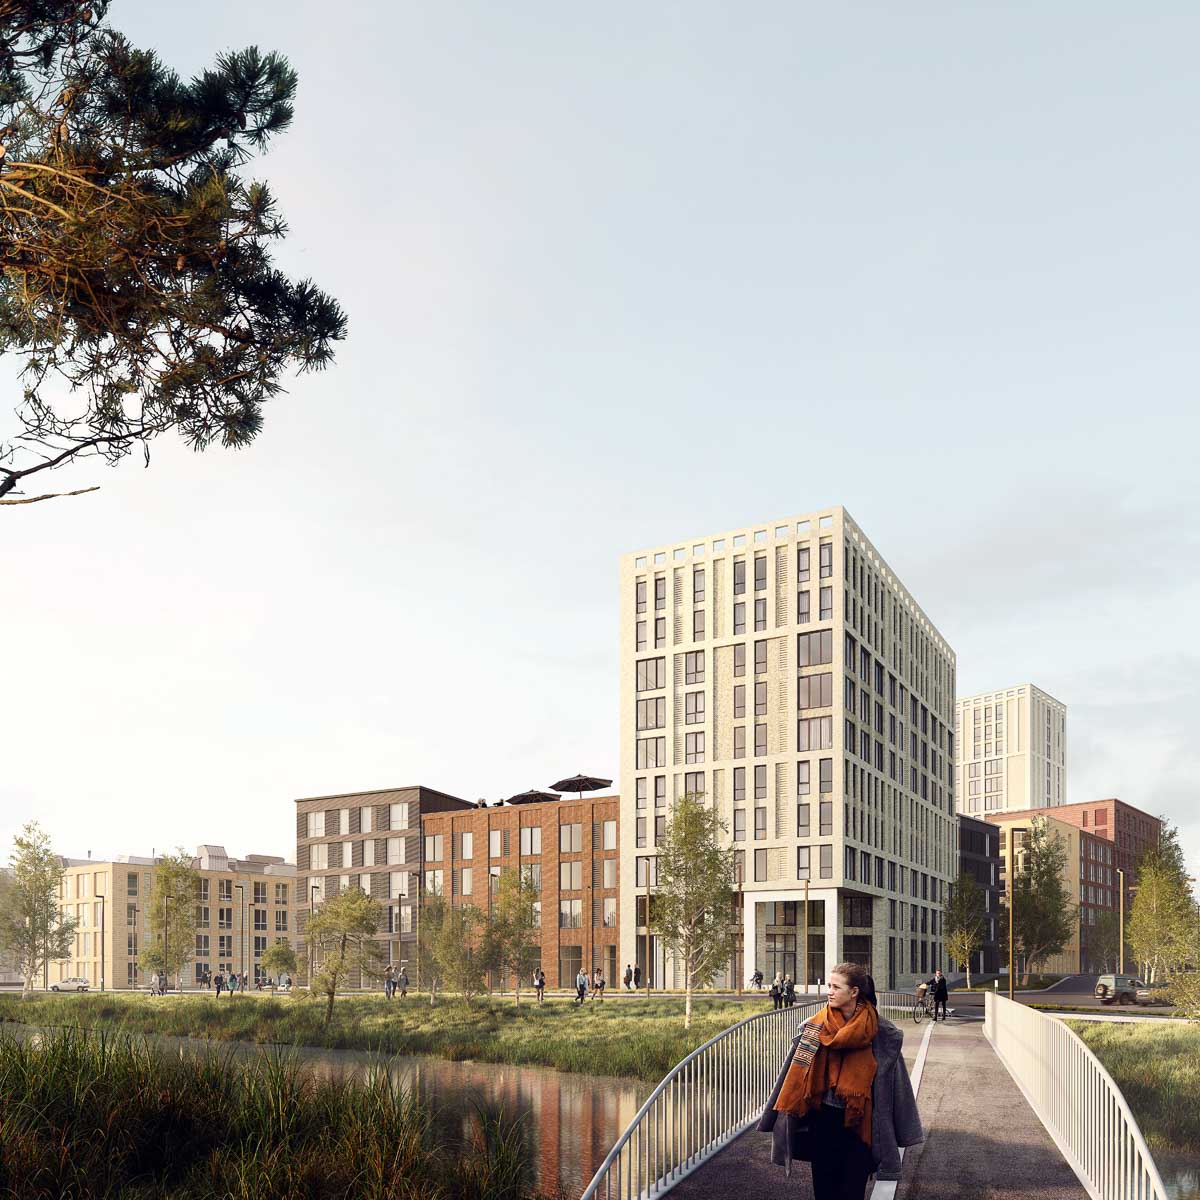 Render of OurDomain Amsterdam Diemen with girl walking on the bridge during the day